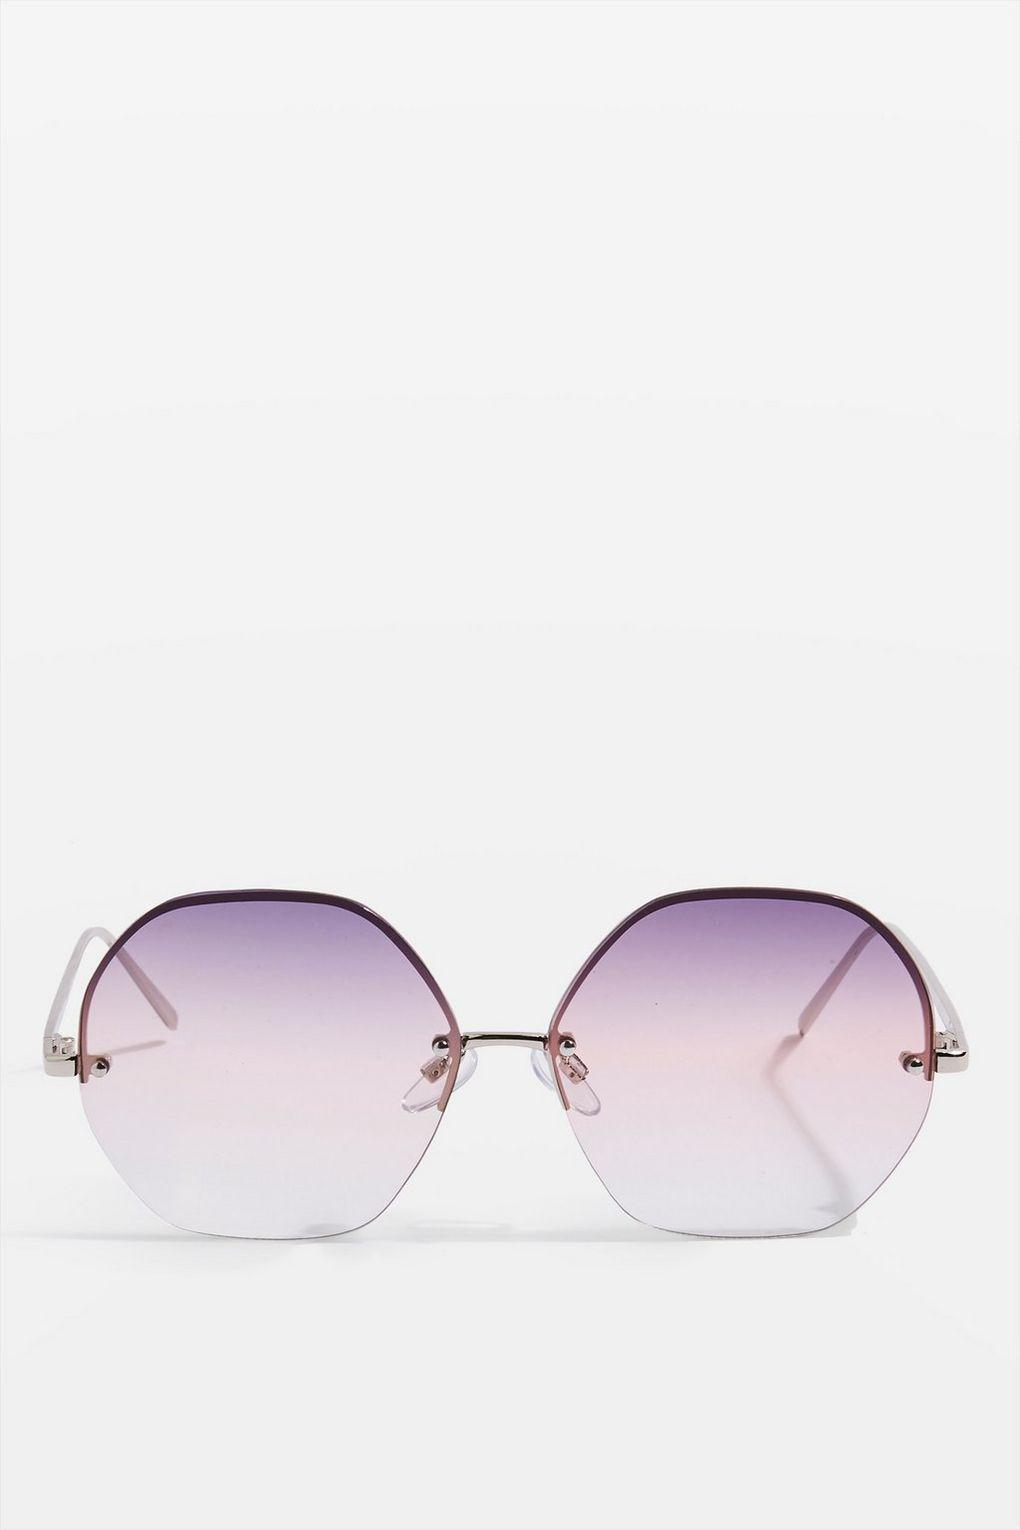 TOPSHOP Melissa Hexagon Frame Sunglasses in Purple